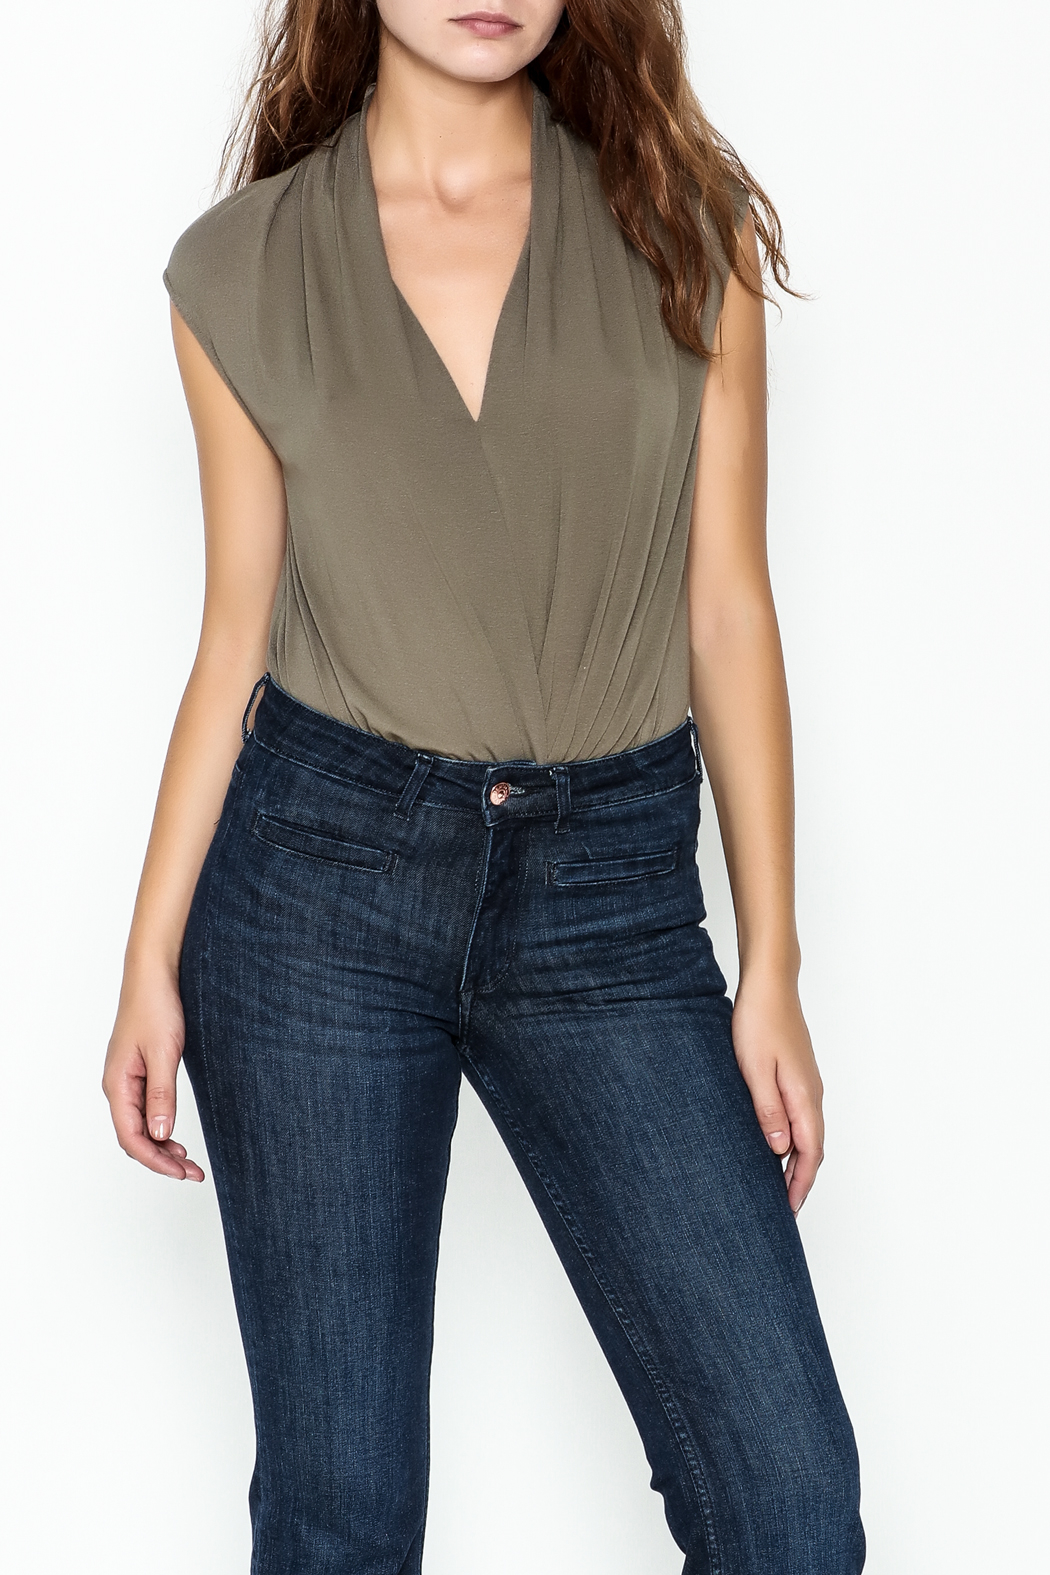 Mustard Seed Date Night Bodysuit - Front Cropped Image